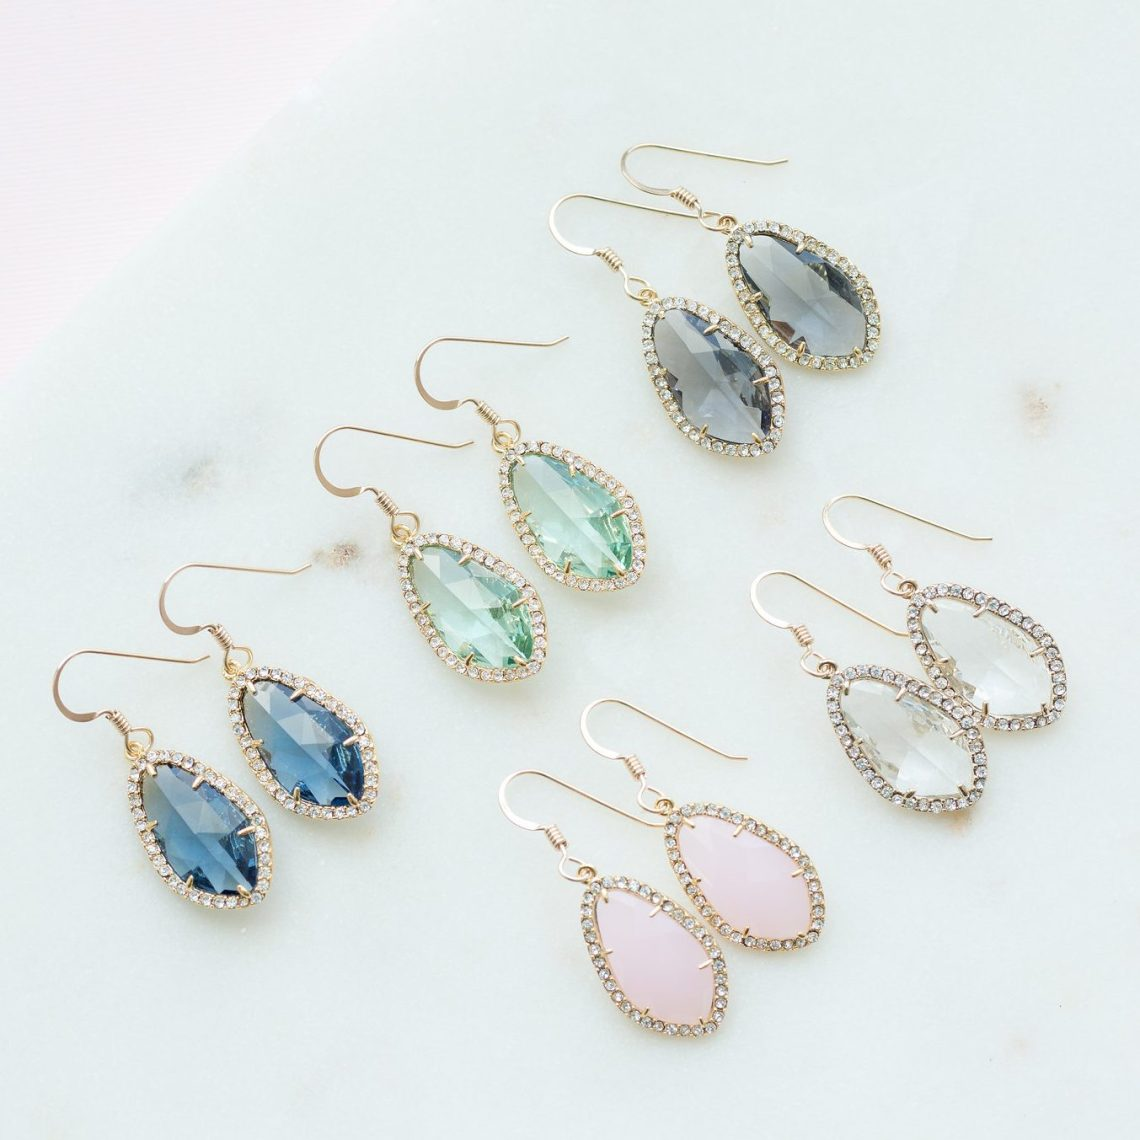 Stacy Mikulik - gallery photo -- grace and hudson jewelry